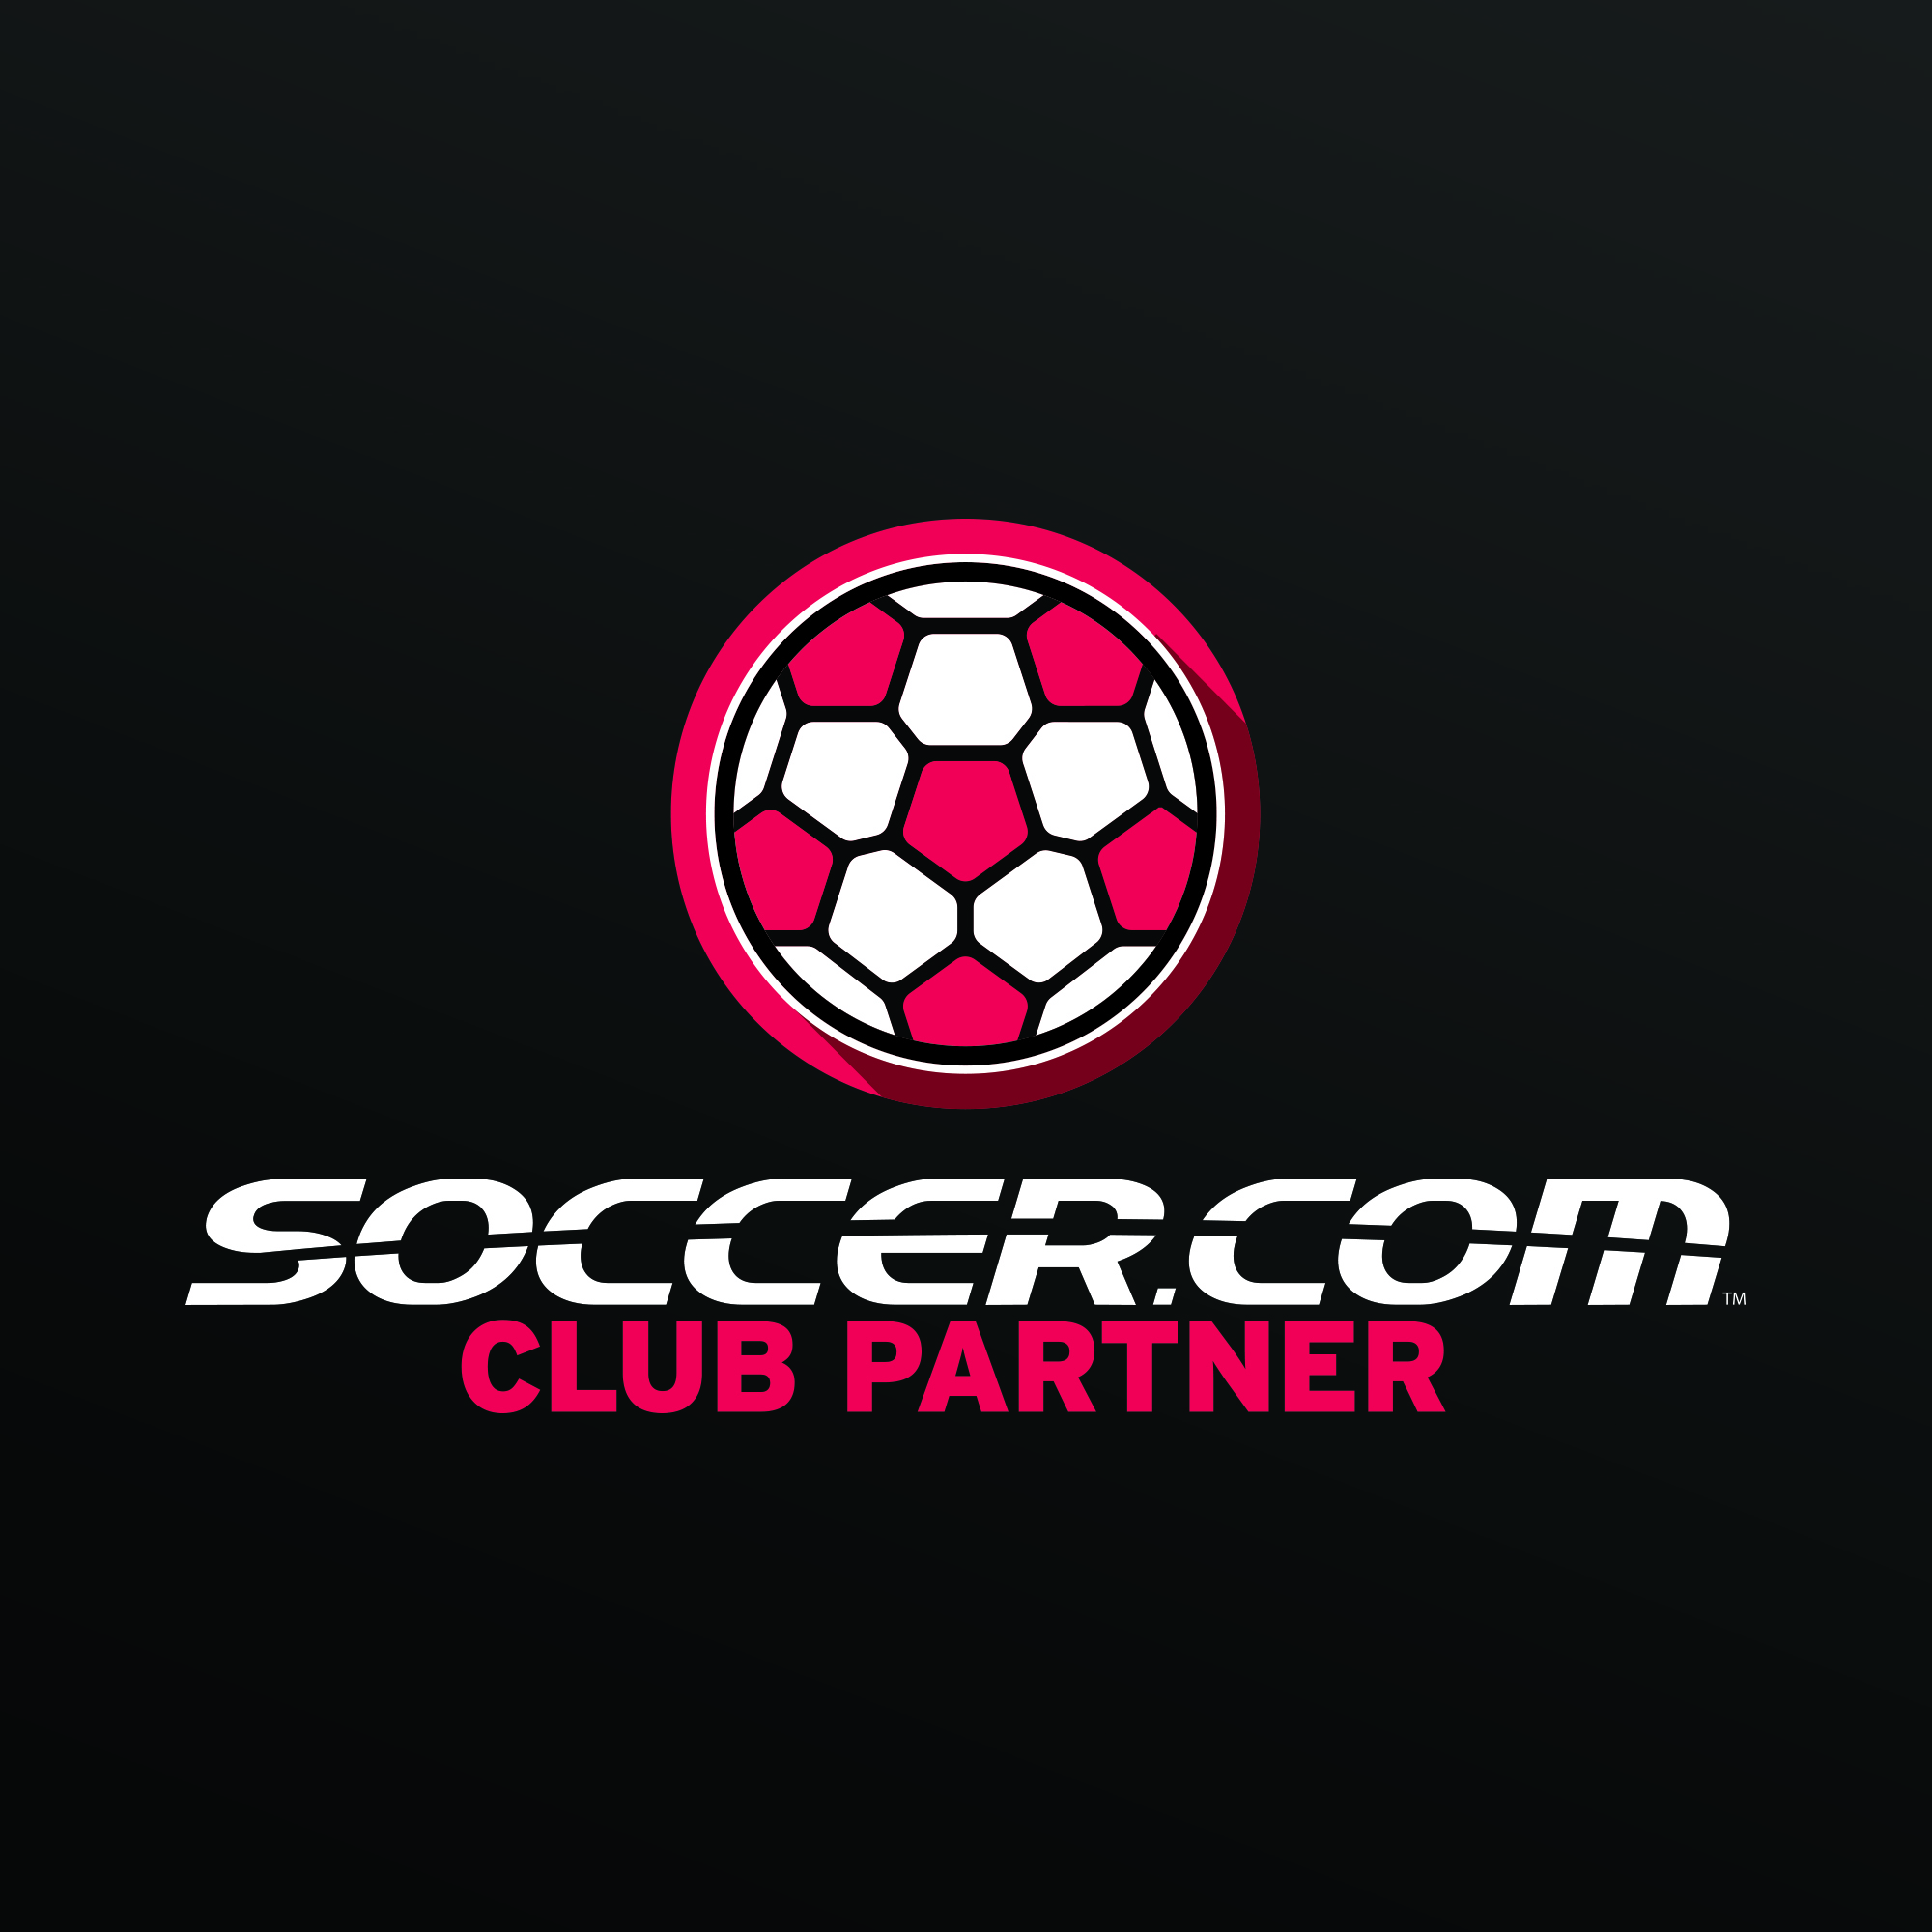 soccer.com club partner logo